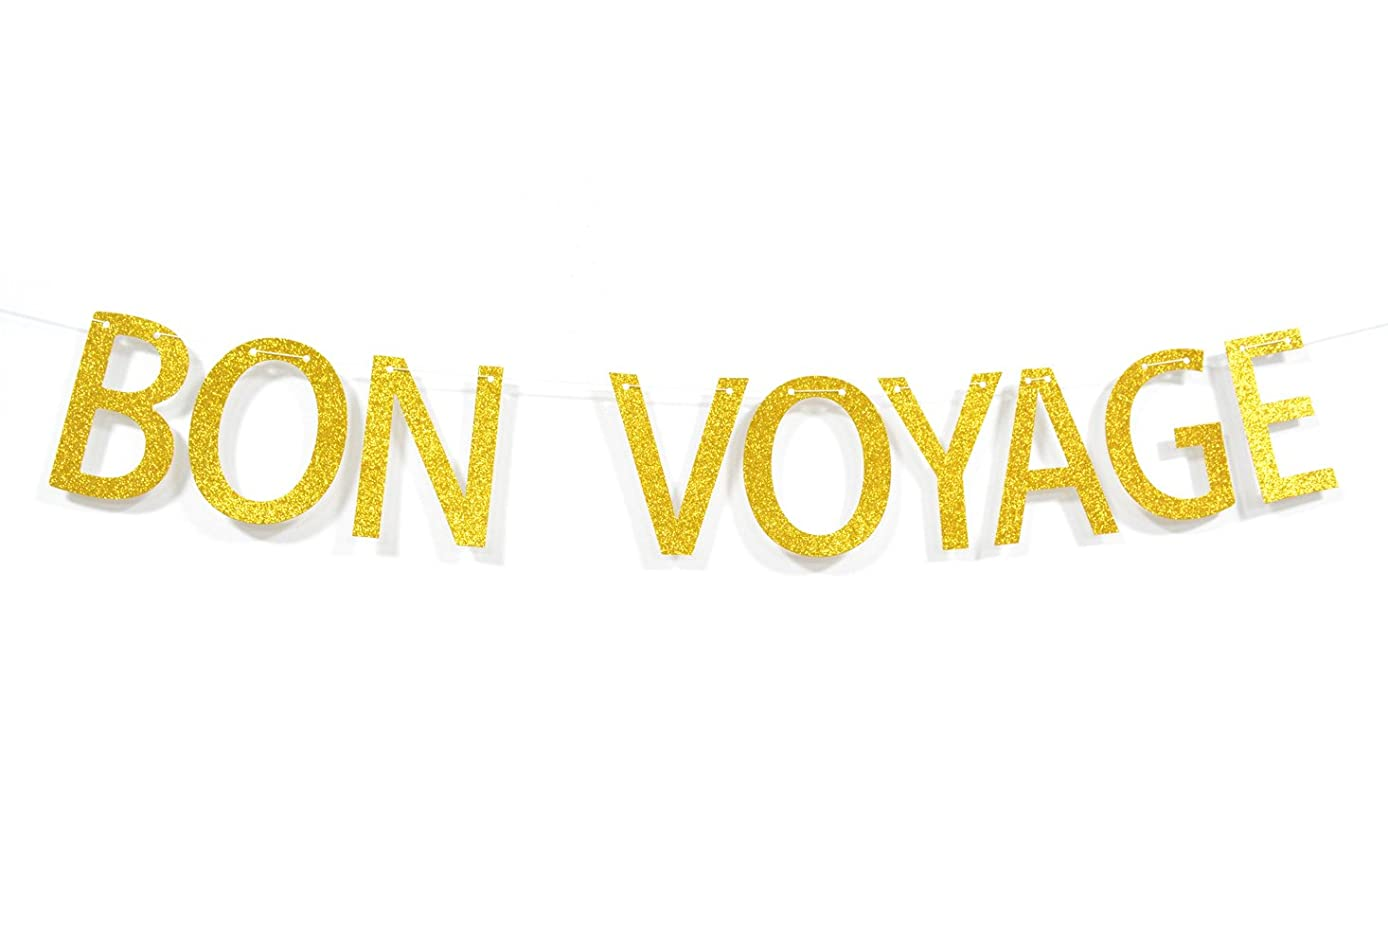 Qttier? Bon Voyage Gold Glitter Letters Banner Going Away Cruise Celebration Moving Away Party Decorations